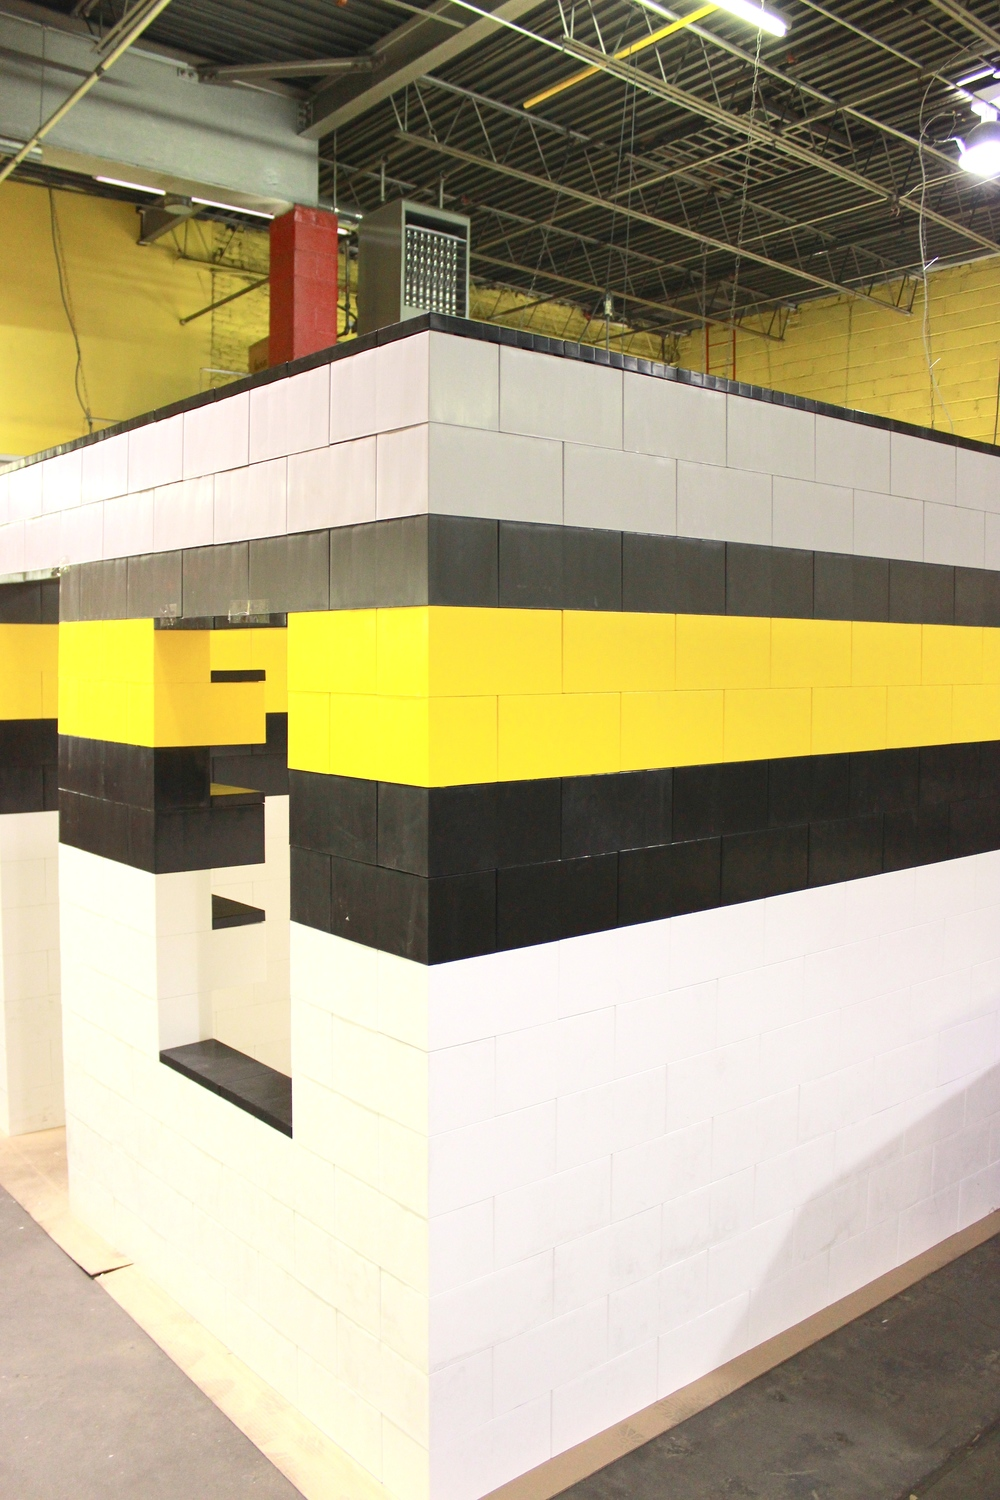 From buildings to room dividers and from pony walls to warning barriers, use EverBlock to build all types of weather and chemical resistant structures for your industrial and construction needs.